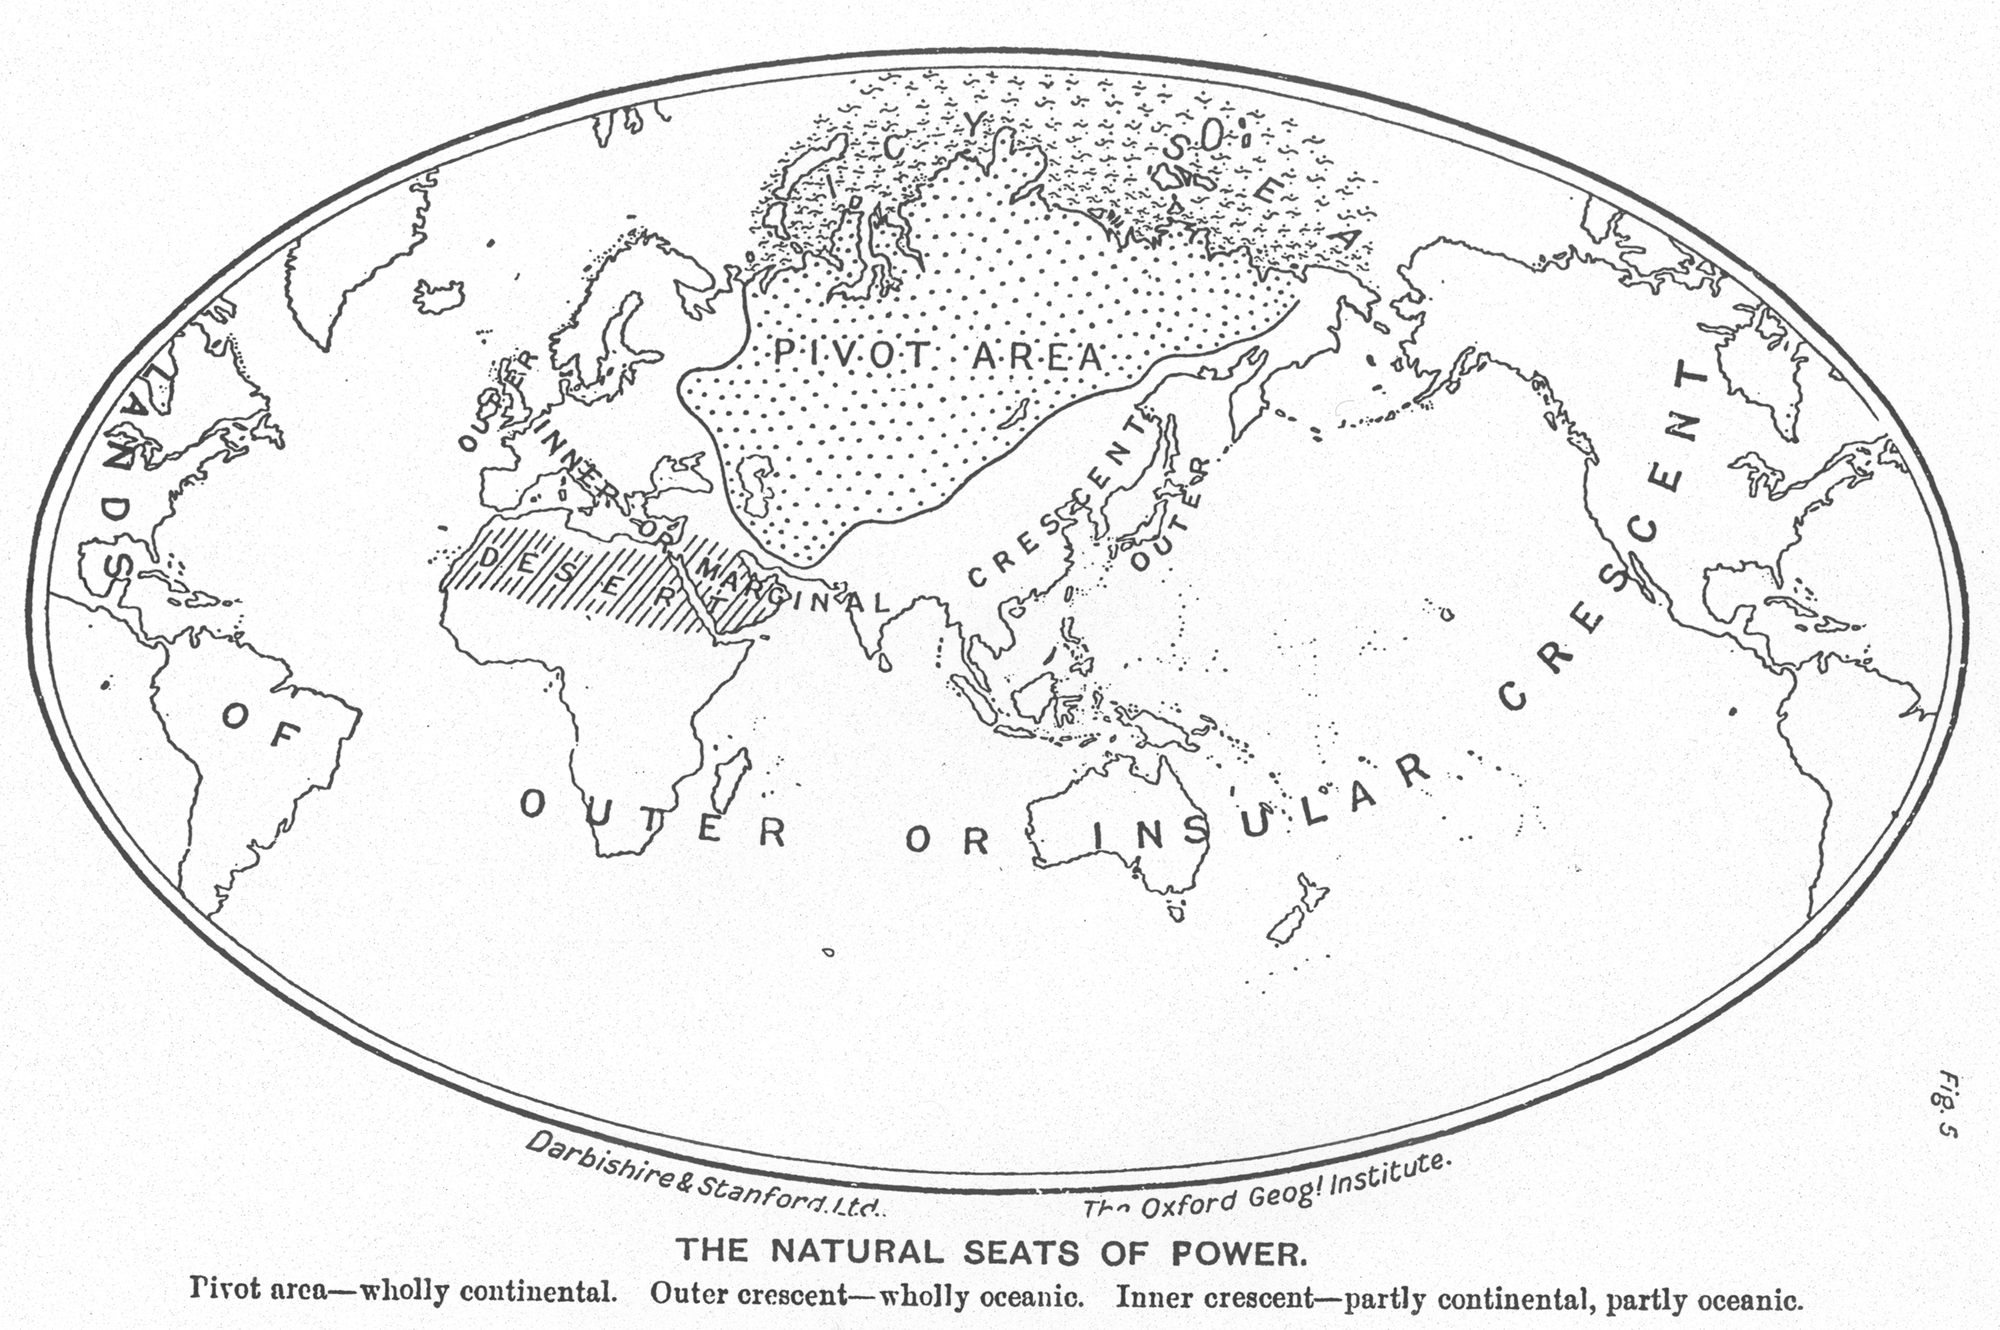 Map Pivot Area 1904 The Oxford Geographical Institute